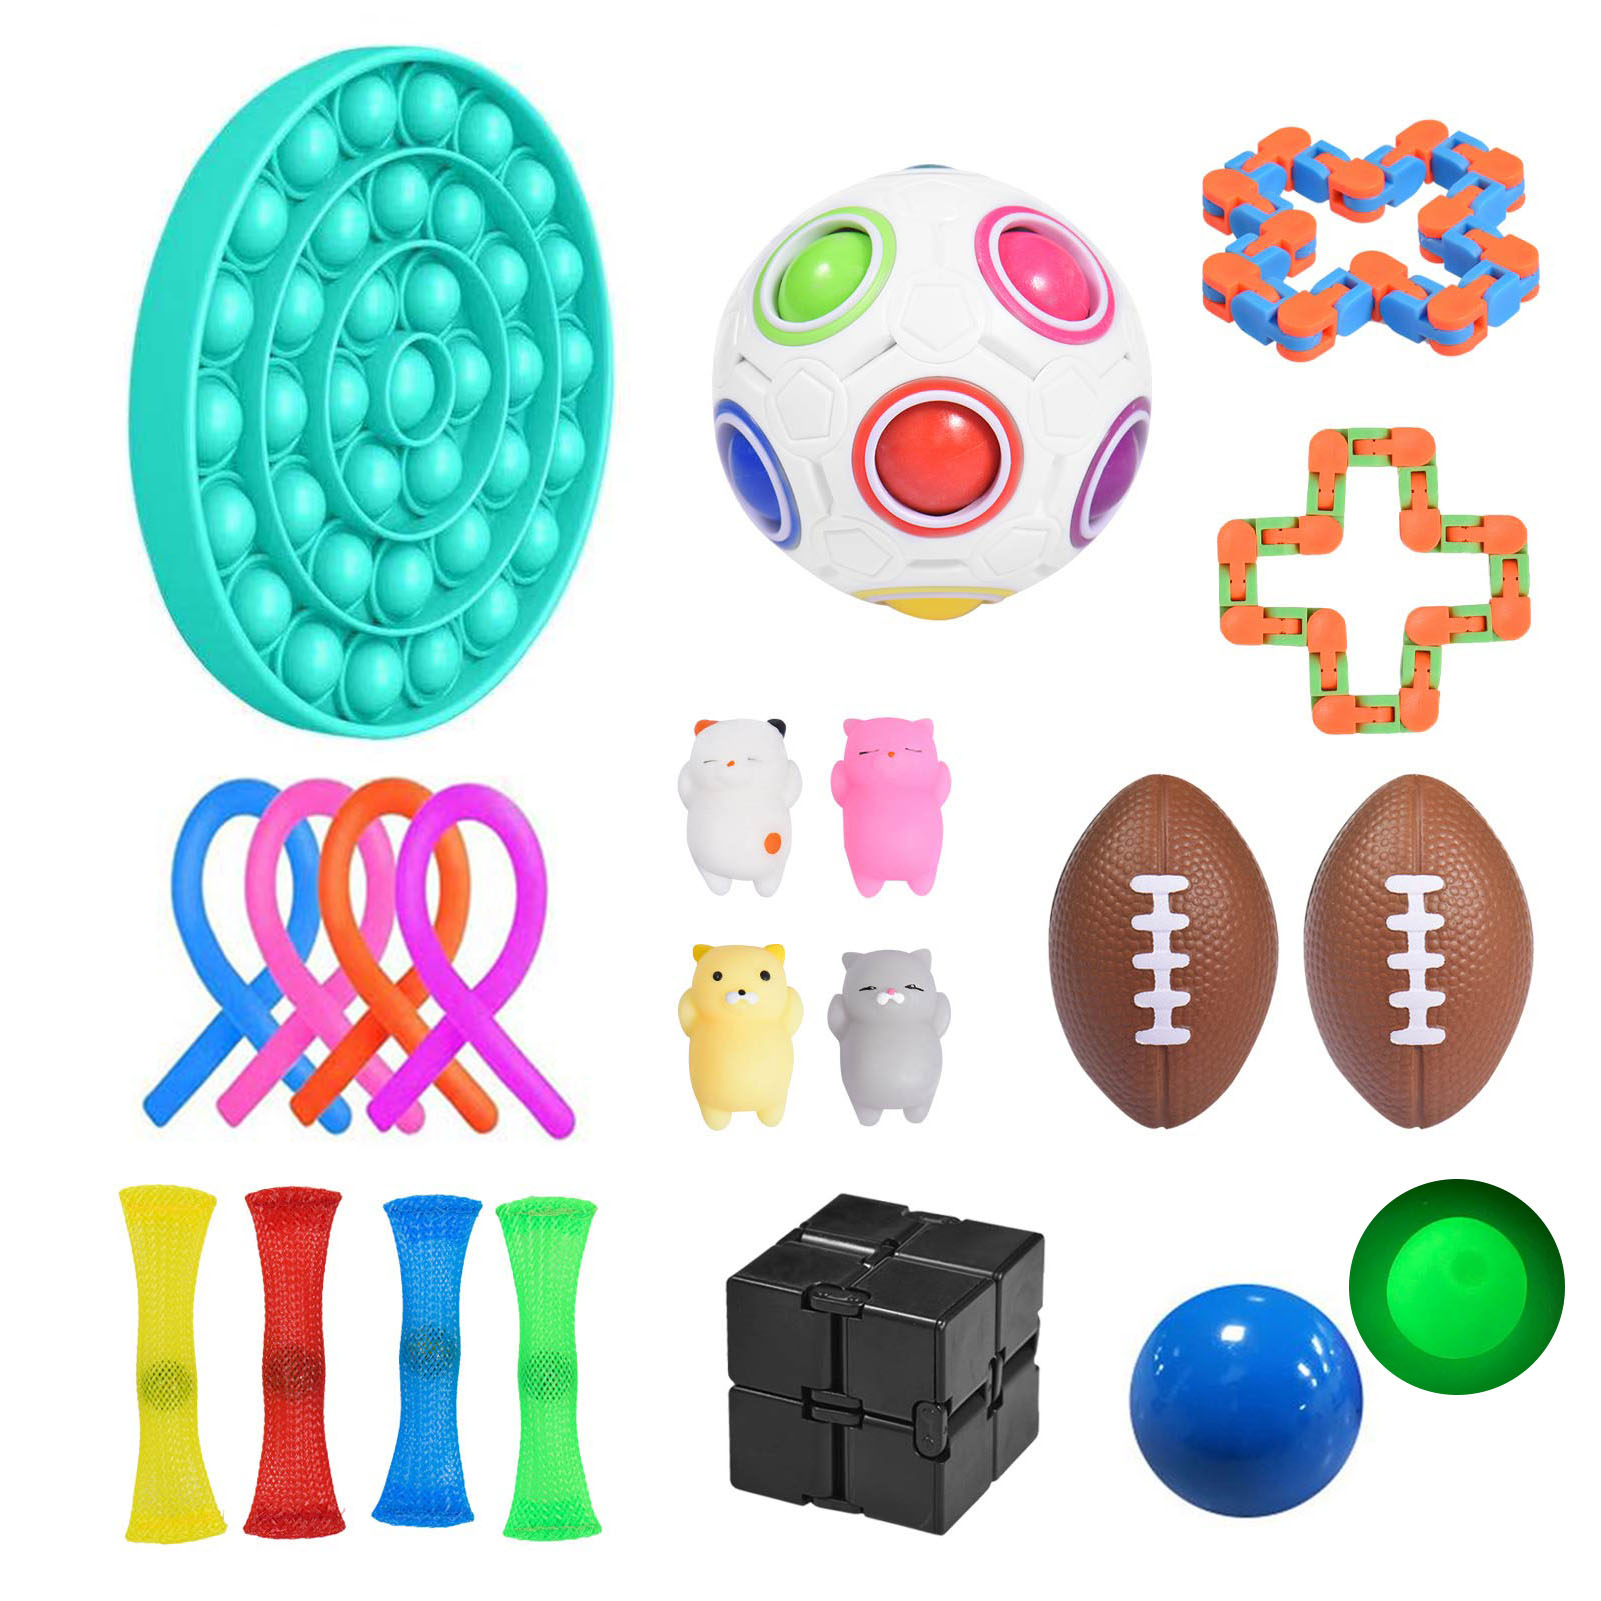 Fidget-Toys-Set Marbles-Ball Relief-Squeeze-Toys Stress Pop Bubble Adults For Kids Autism img3